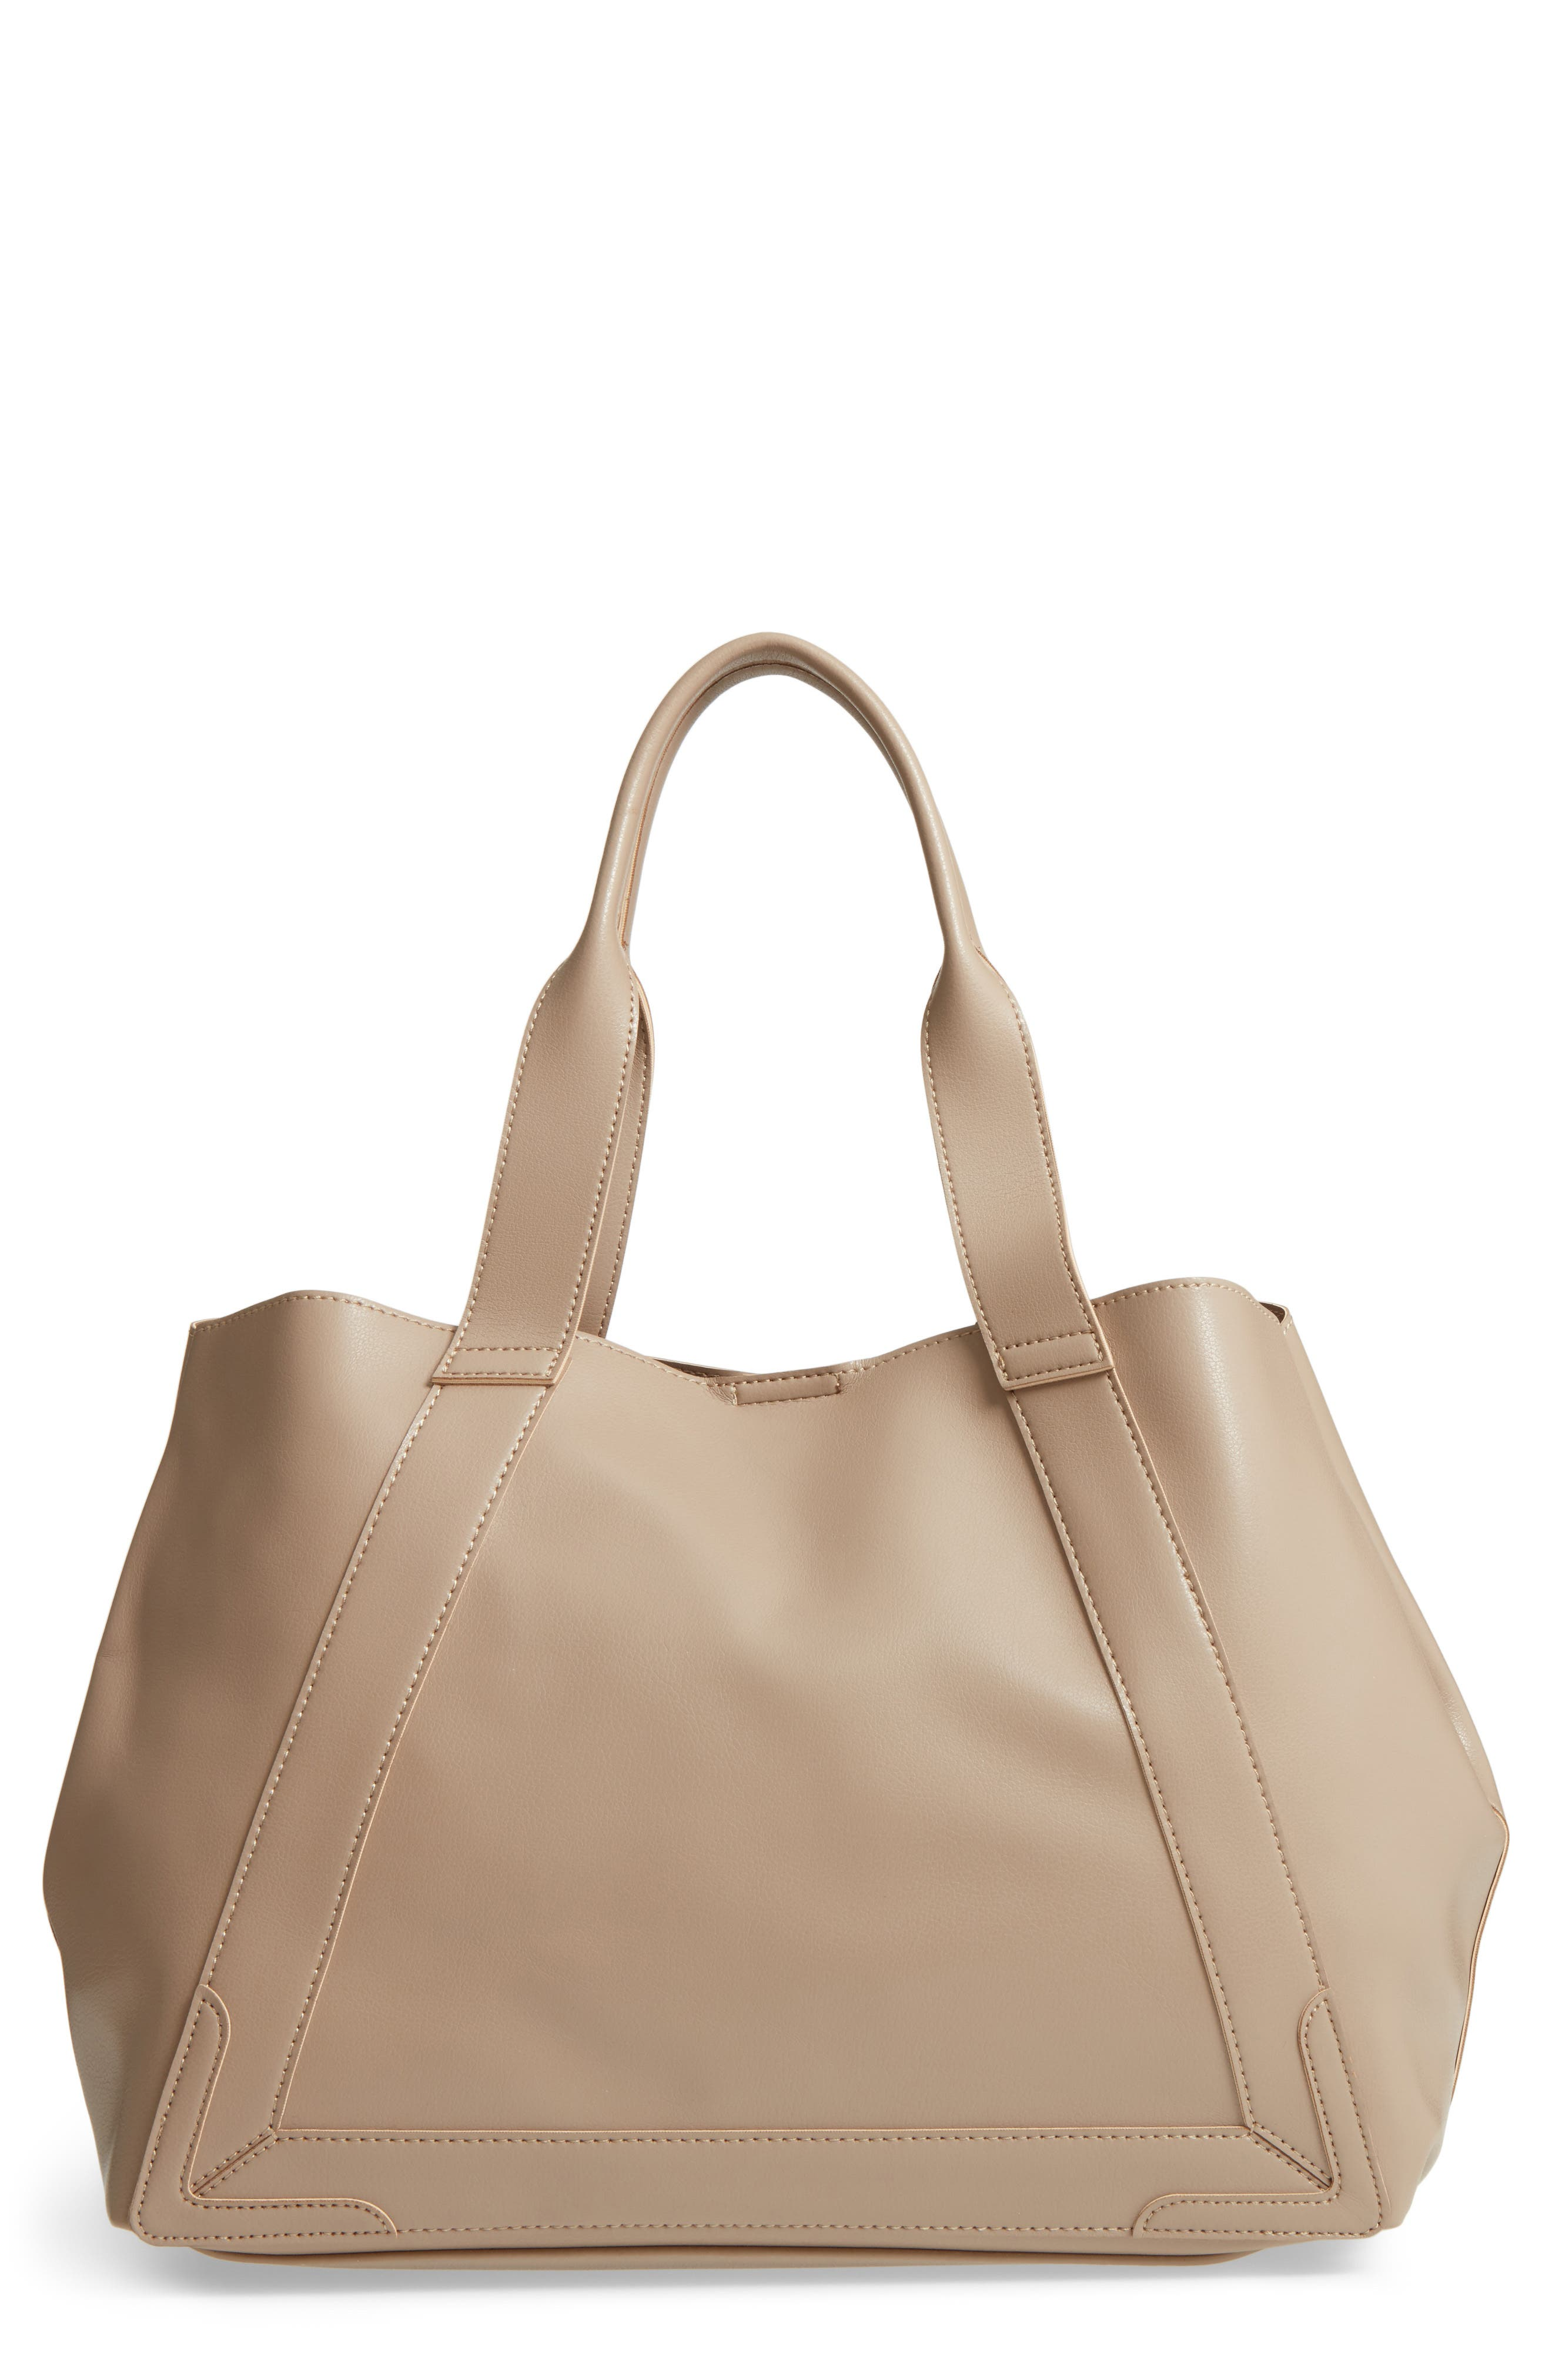 SOLE SOCIETY Decklan Faux Leather Tote